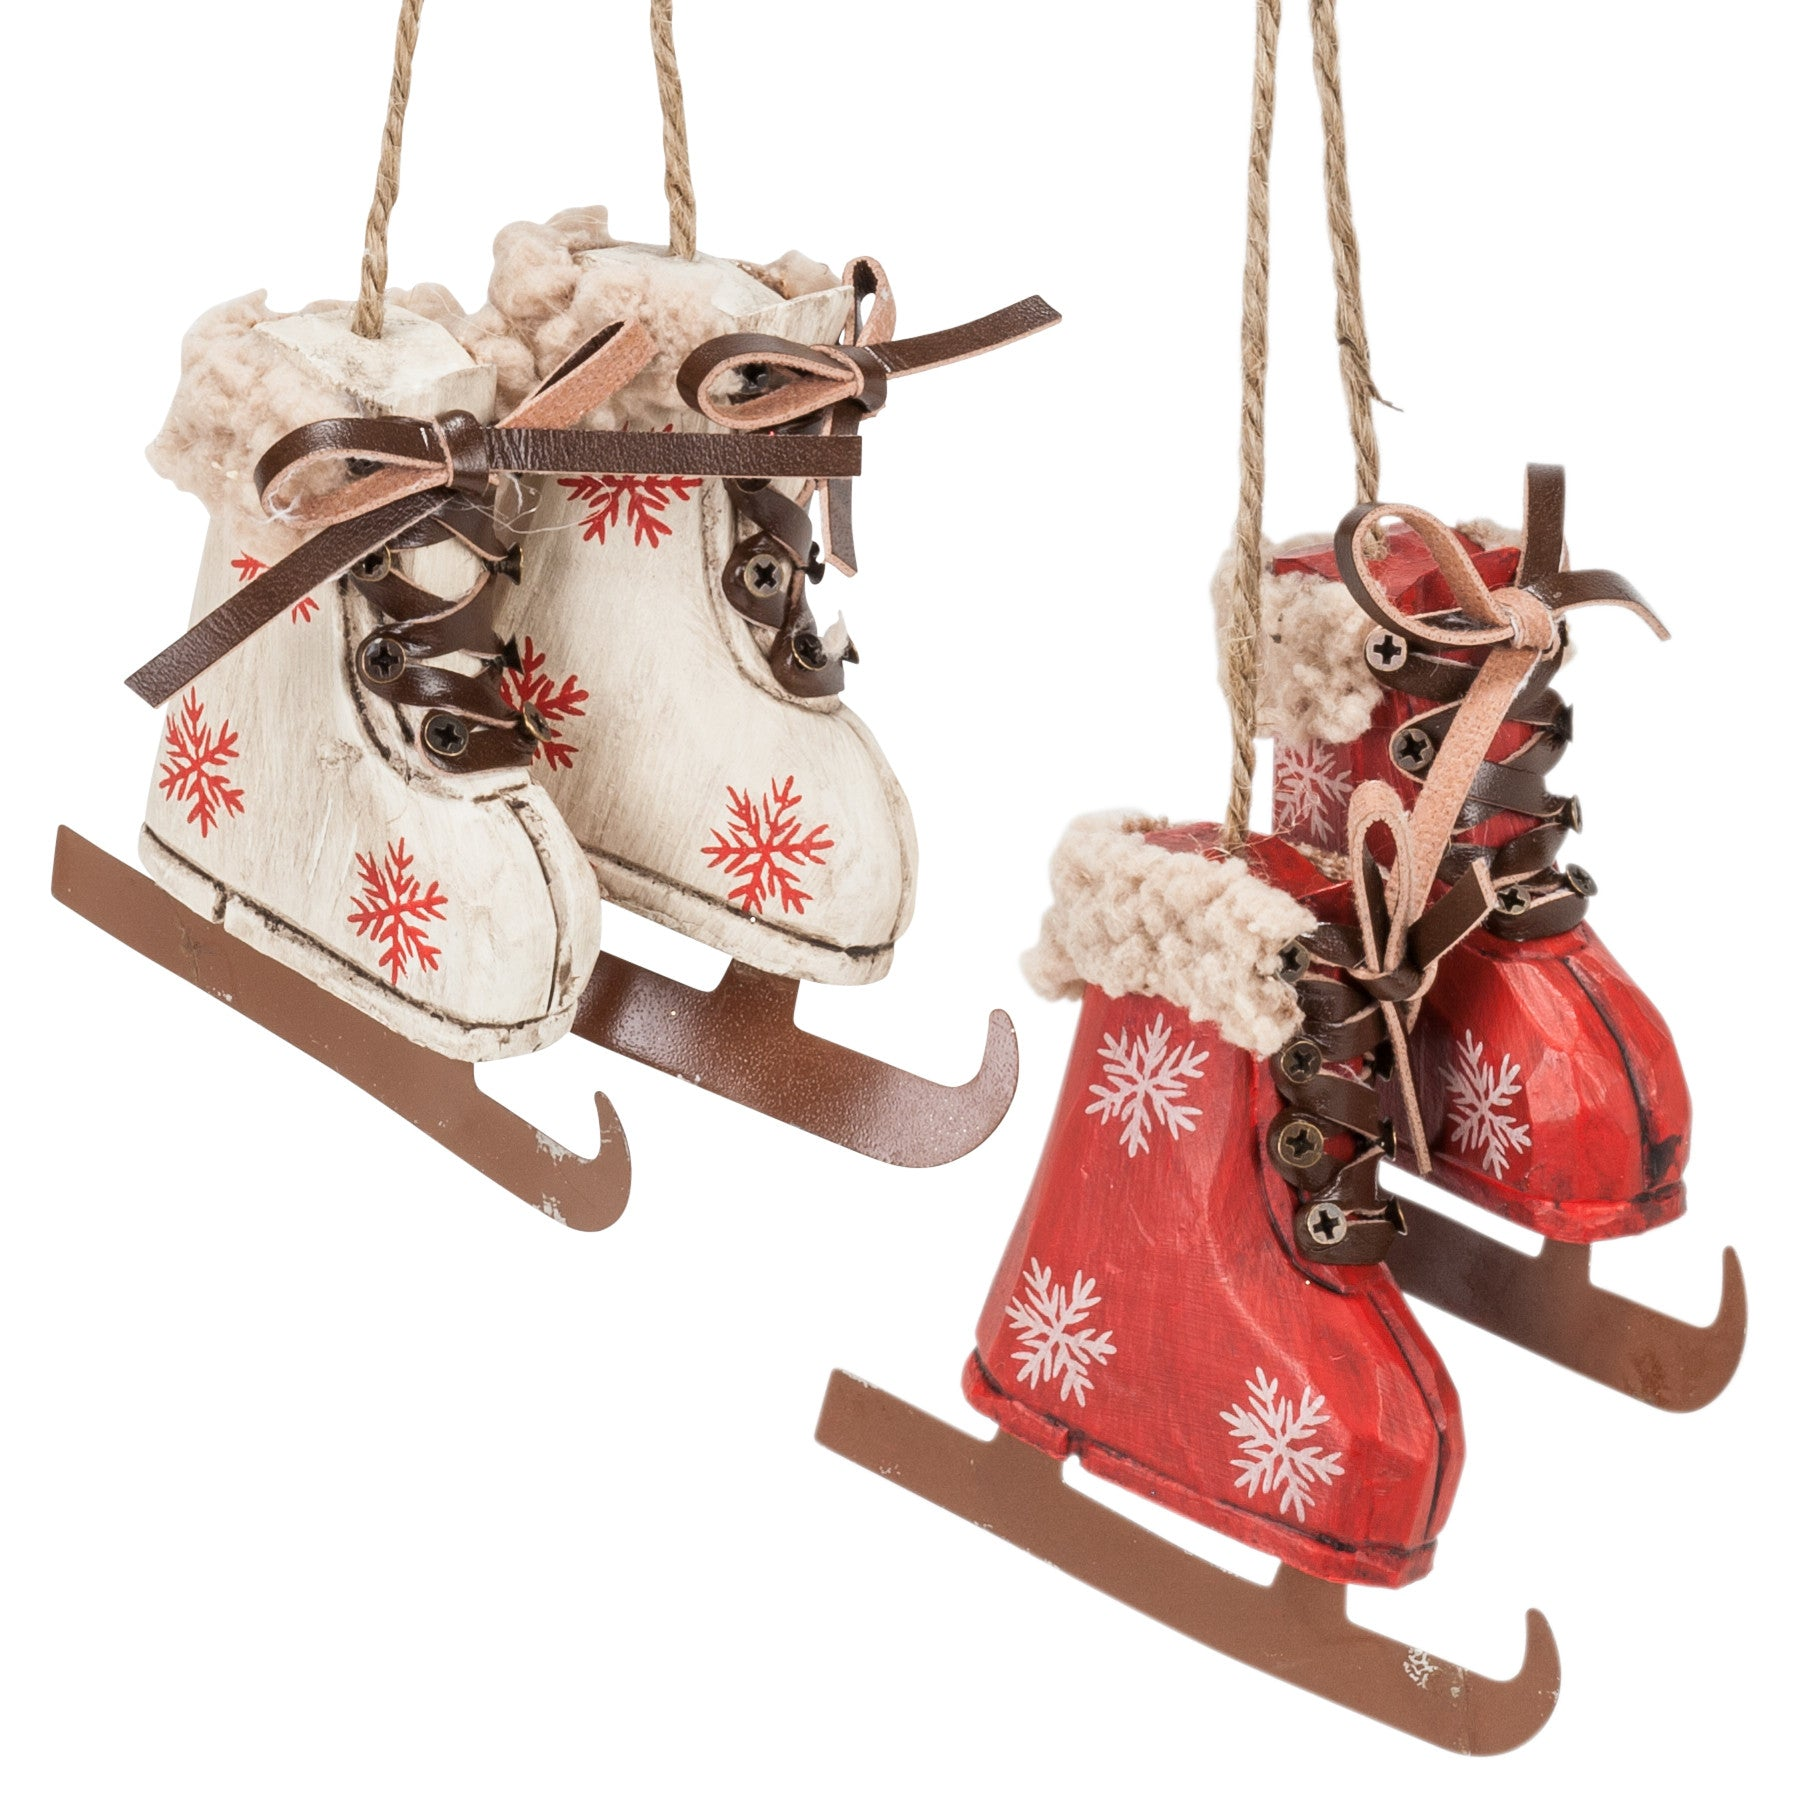 Set of 6 Pair of Skates Ornaments | Christordecor.com - Christor Decor